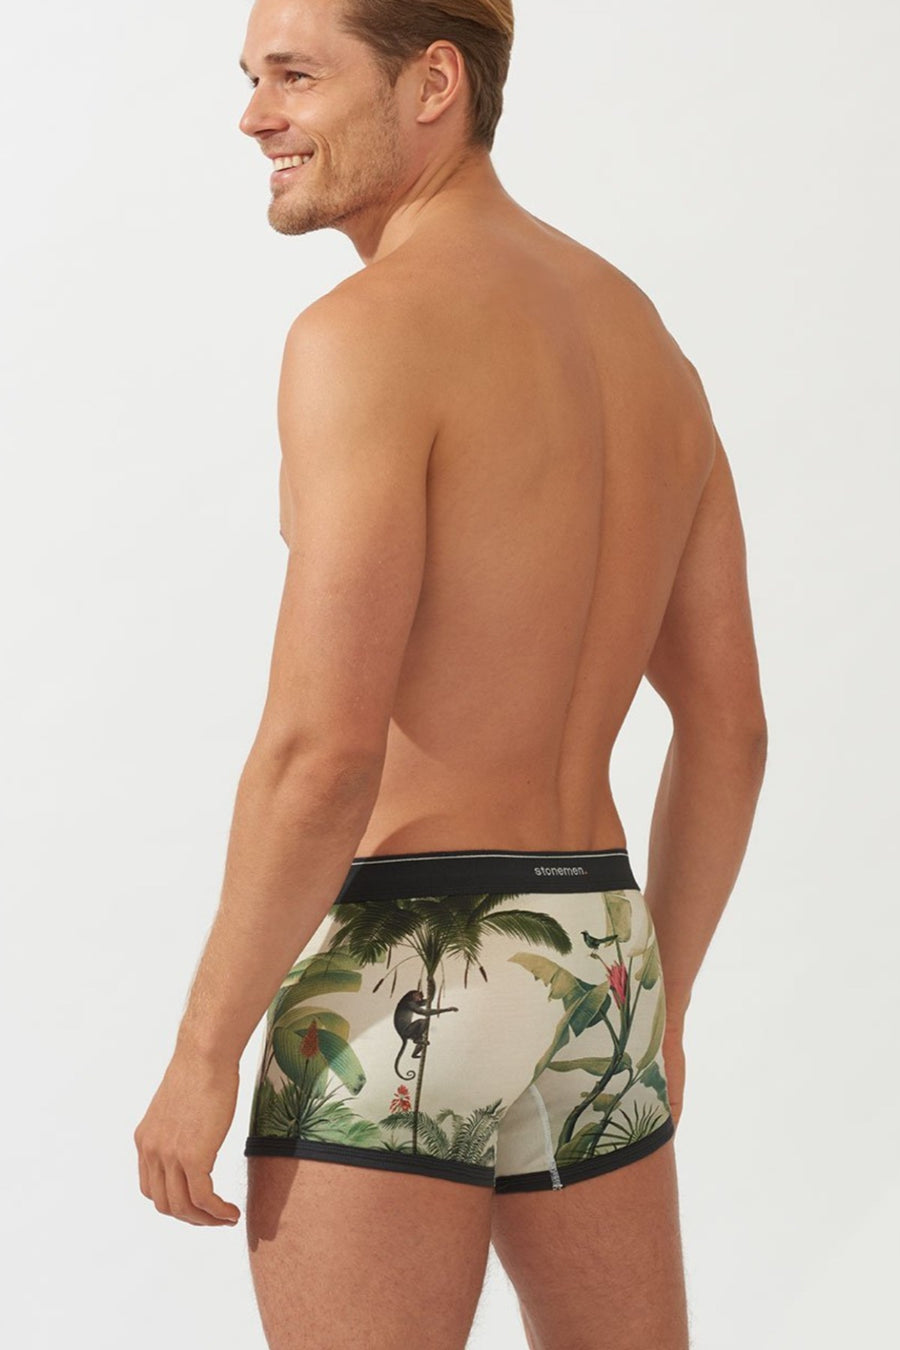 Boxer Brief - Monkeys - Shop Online At Mookah - mookah.com.au